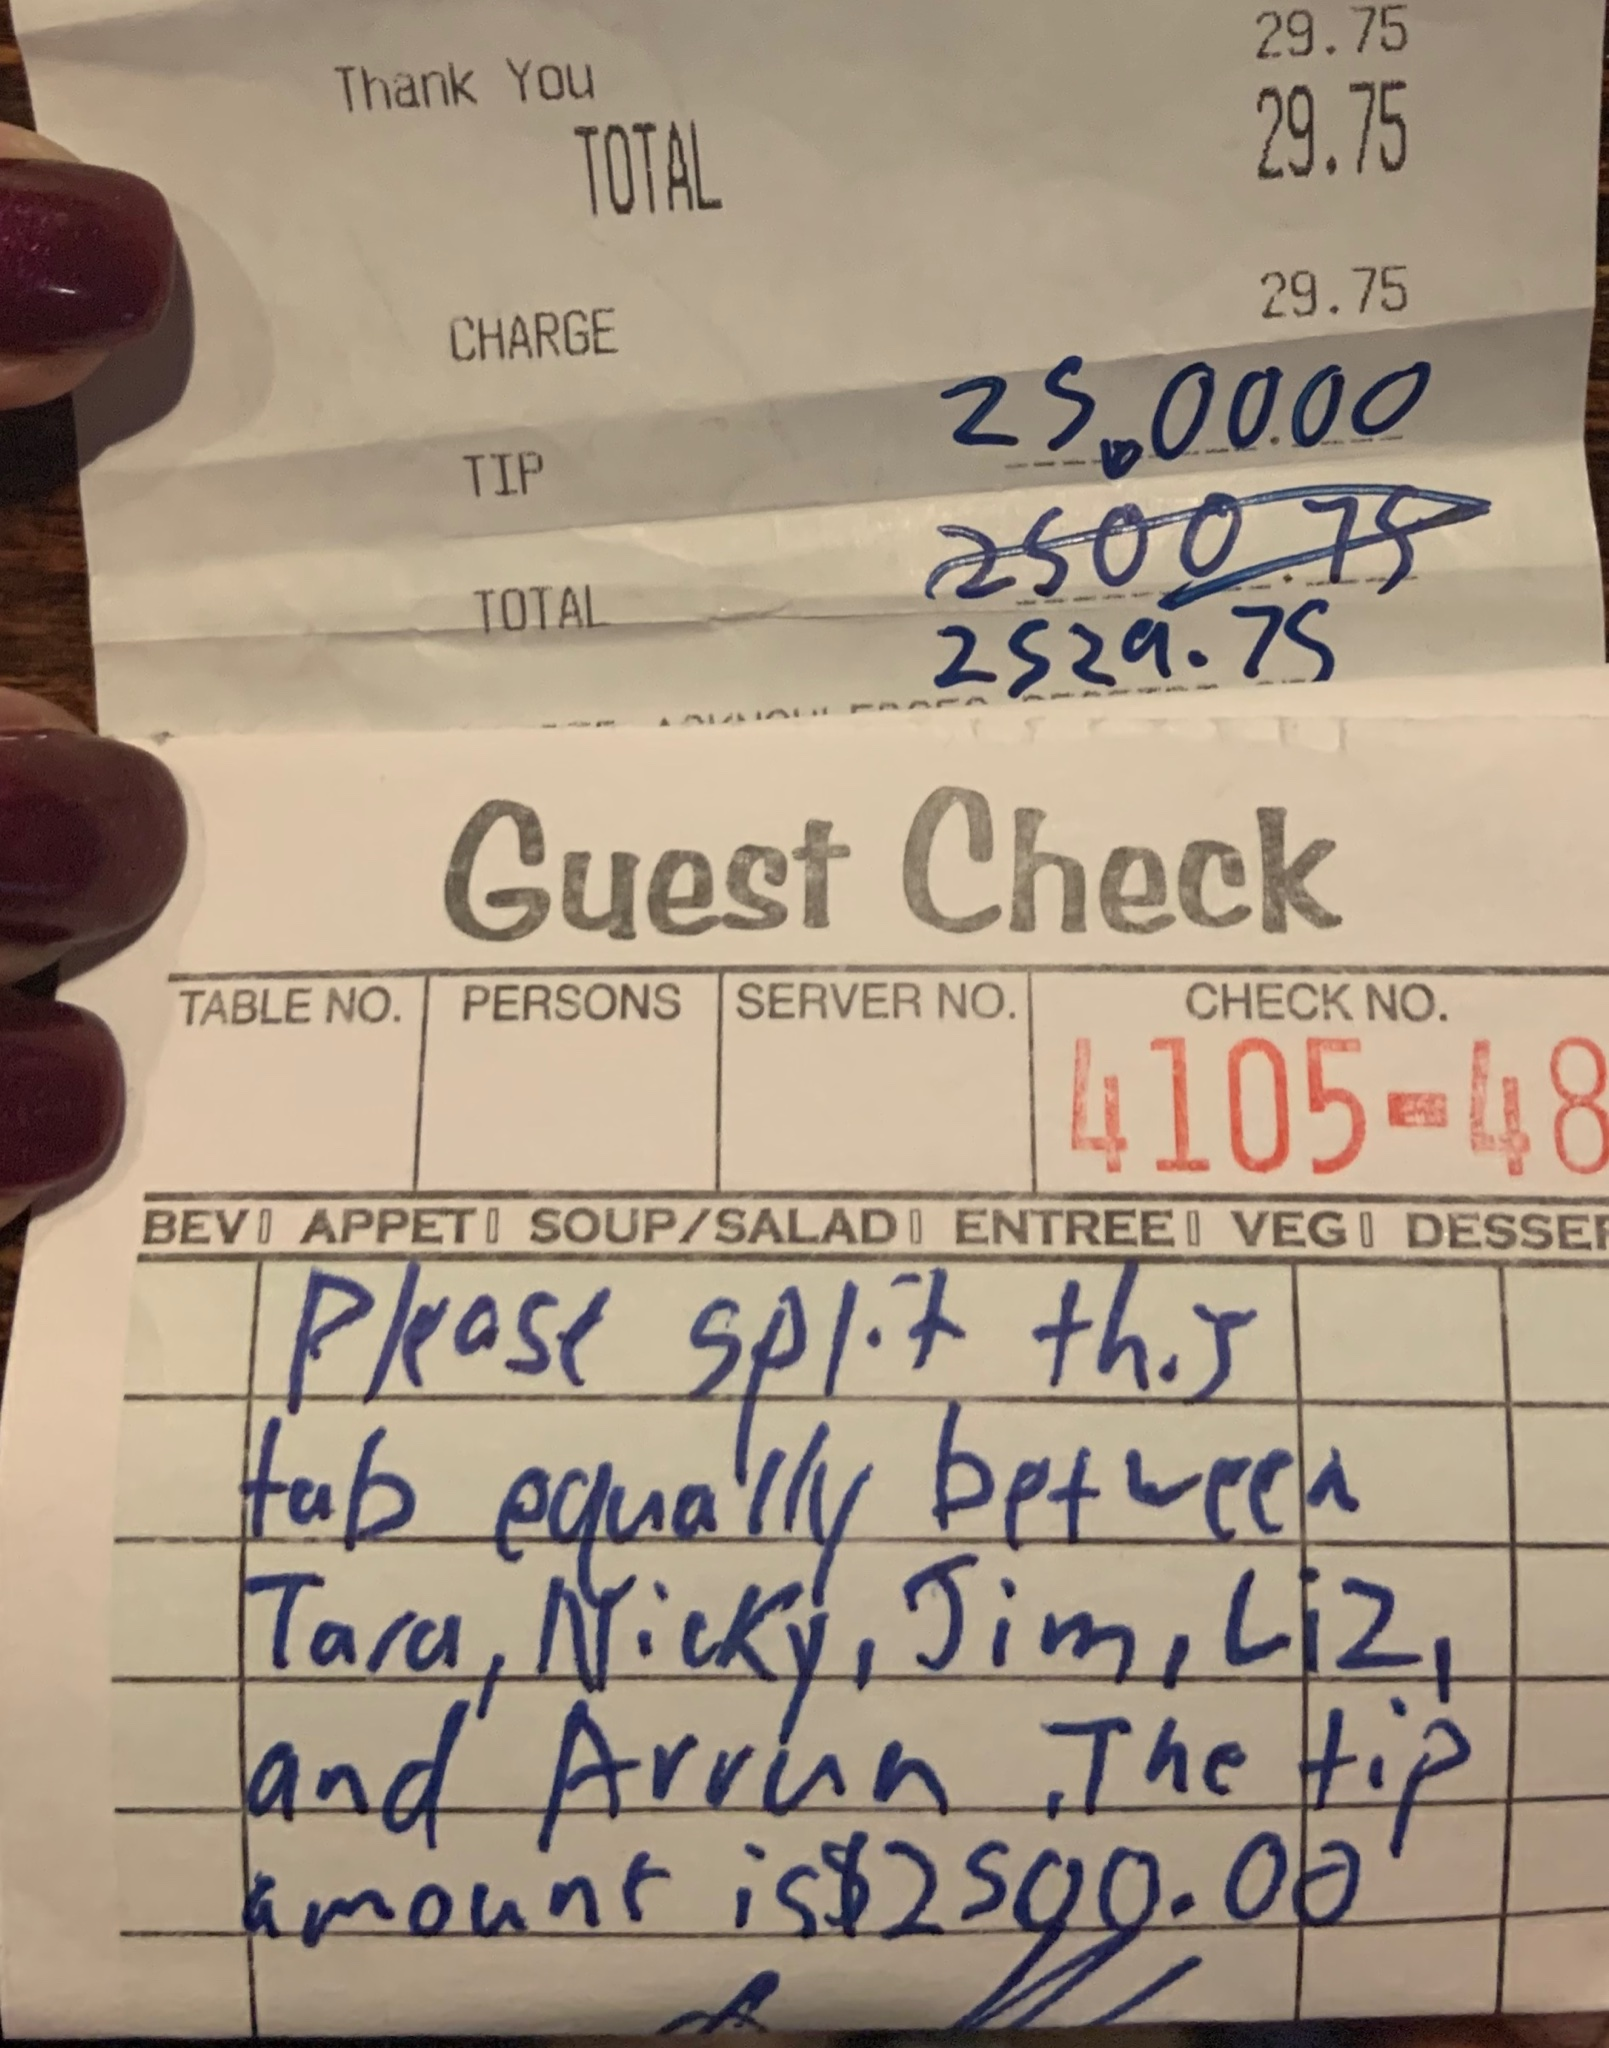 Kindness: Restaurant Staffers Left with $2,500 Tip Before They Closed